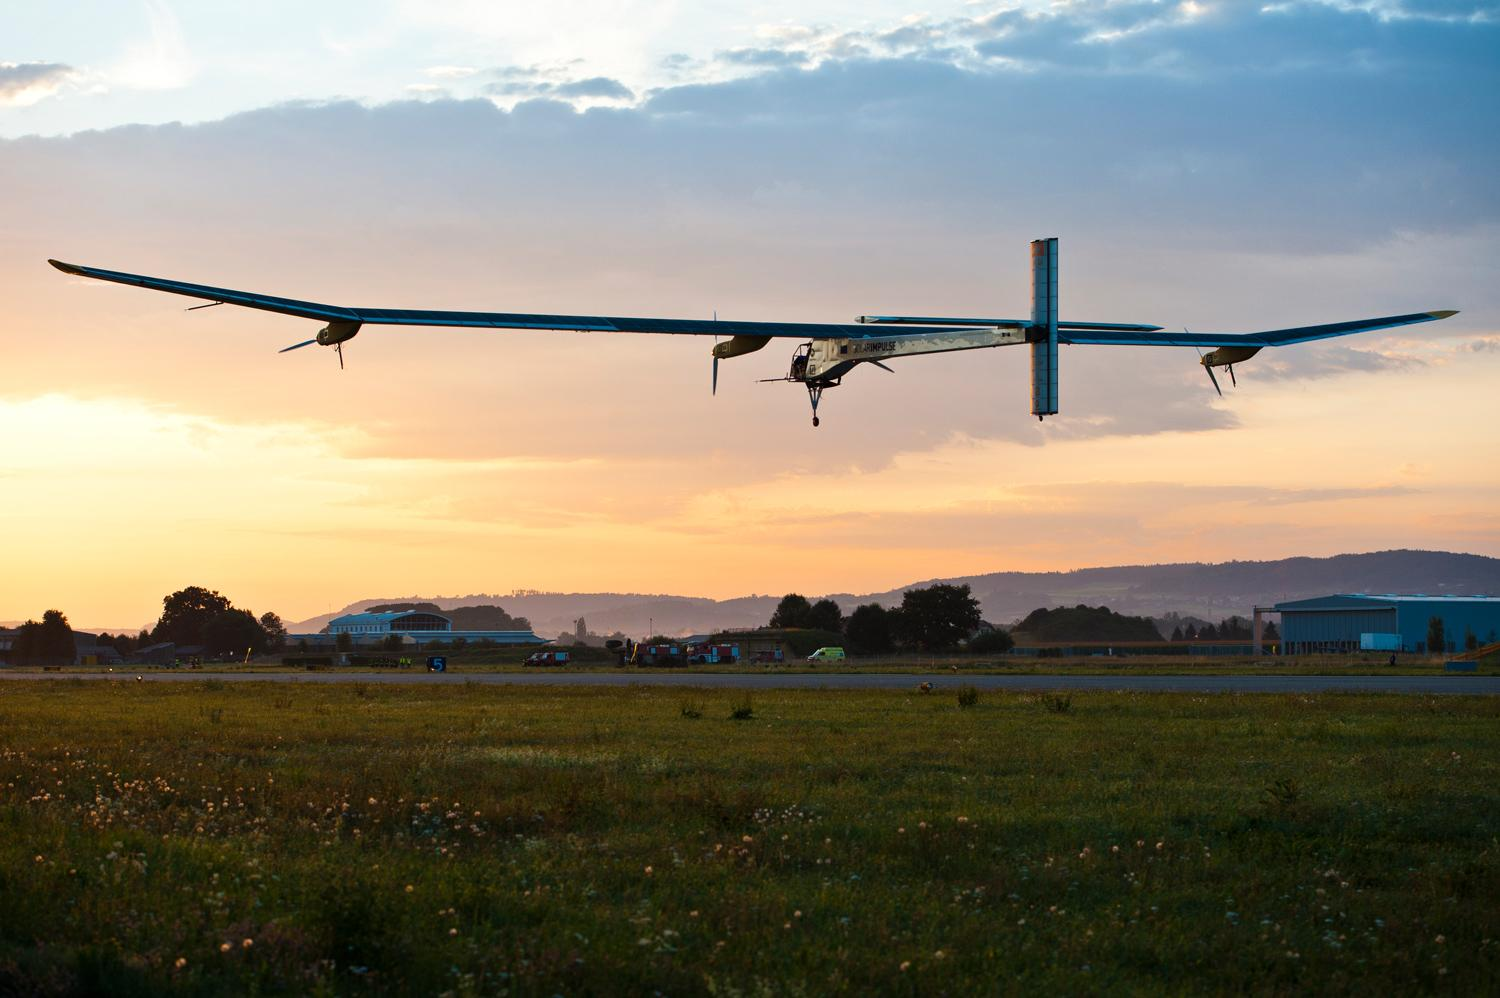 the solar impulse aircraft as the future of transformation Solar impulse is a swiss long-range experimental solar-powered aircraft project, and also the name of the project's two operational aircraft the privately financed project is led by swiss engineer and businessman andré borschberg and swiss psychiatrist and balloonist bertrand piccard, who co-piloted breitling orbiter 3.